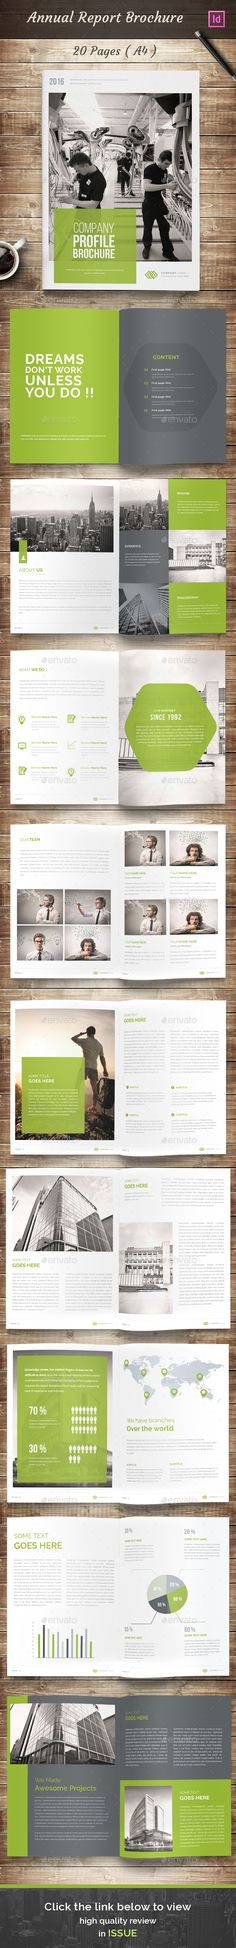 [Inspirations éditoriales] - 20 Pages A4 Annual Report Brochure Template InDesign INDD. Download here: http://graphicriver.net/item/annual-report-brochure/15487461?ref=ksioks